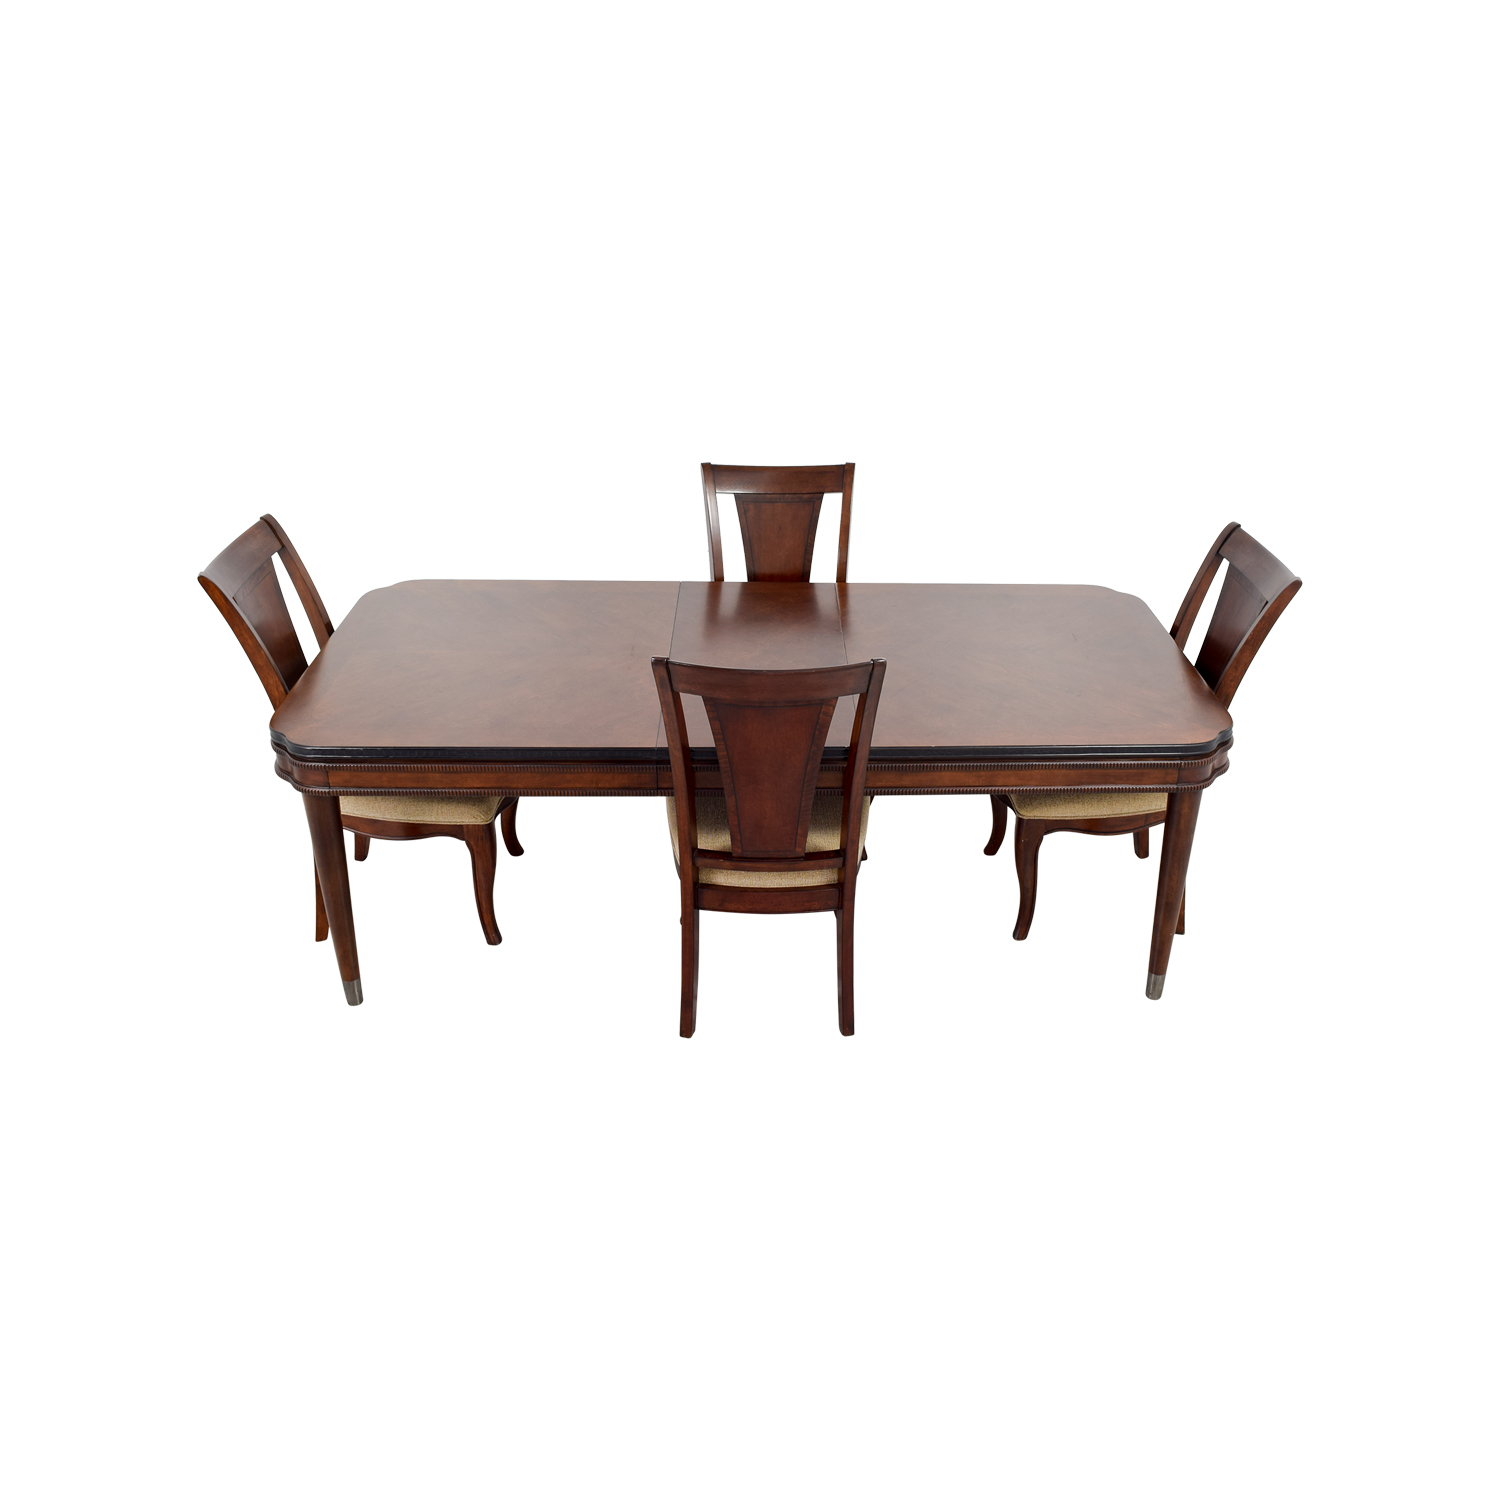 Raymour And Flanigan Dining Chairs: Raymour & Flanigan Raymour & Flanigan Extendable